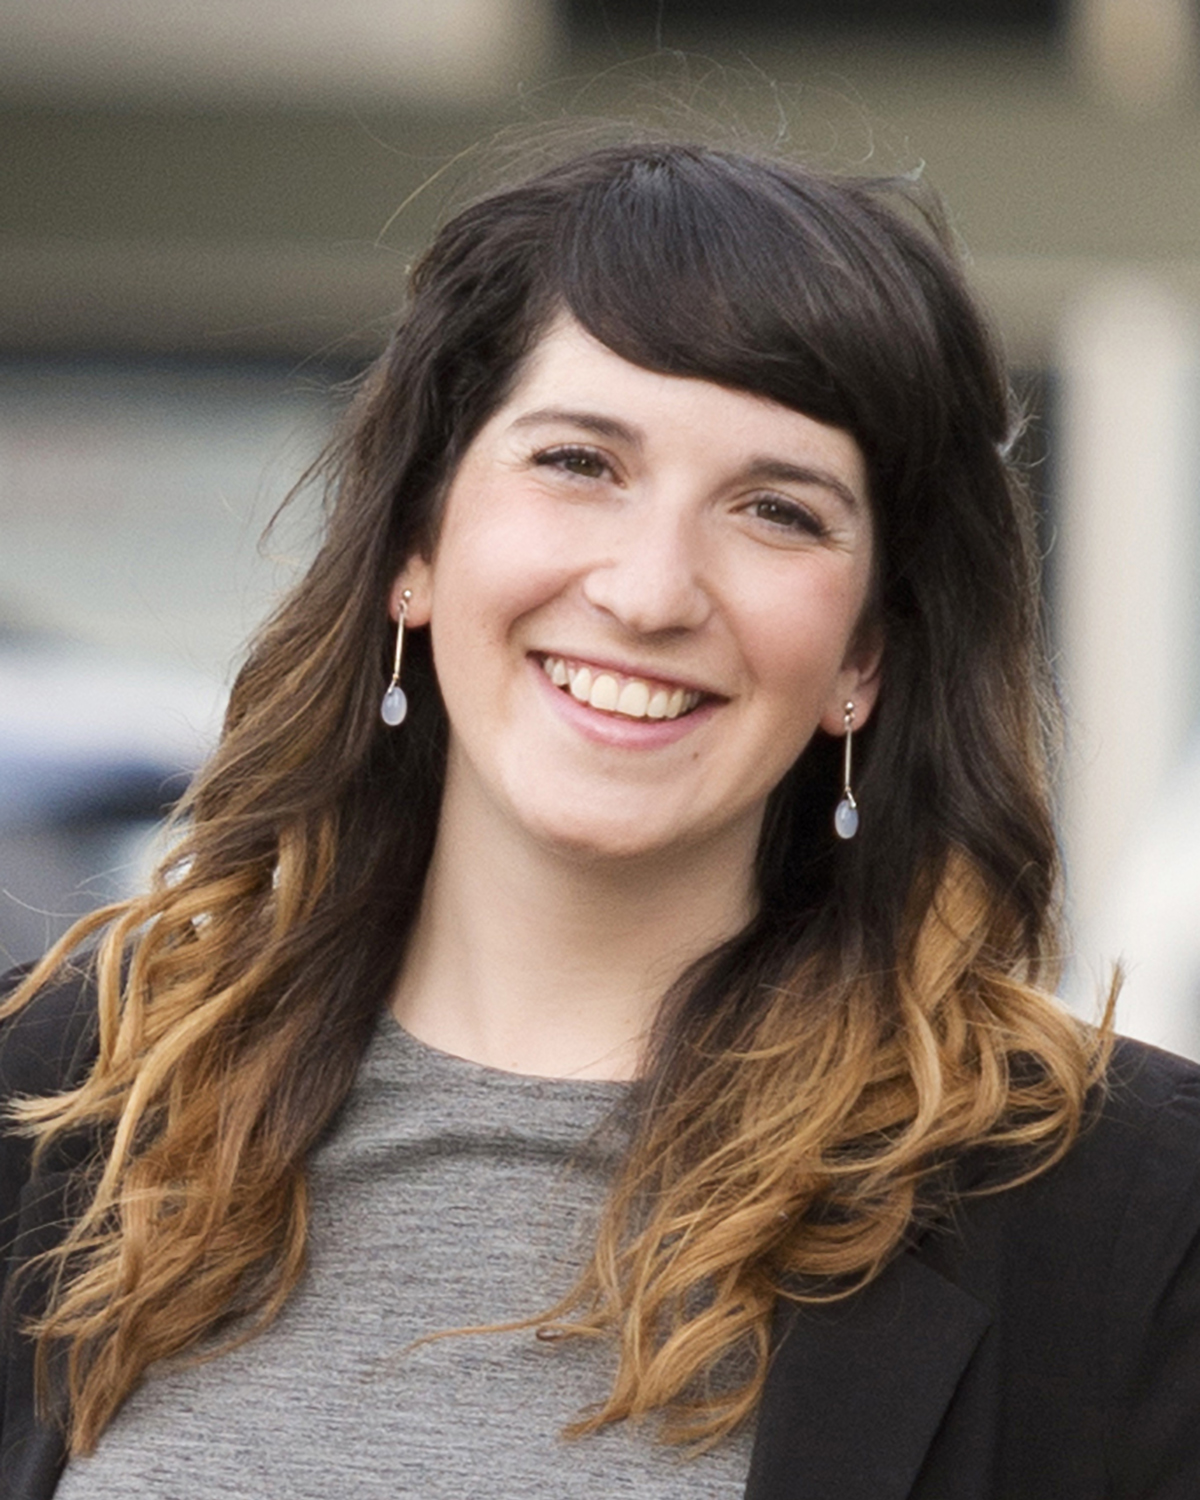 Sarina_Gersher__Candidate_for_Ward_8_City_Council_-_1200x1500.jpg